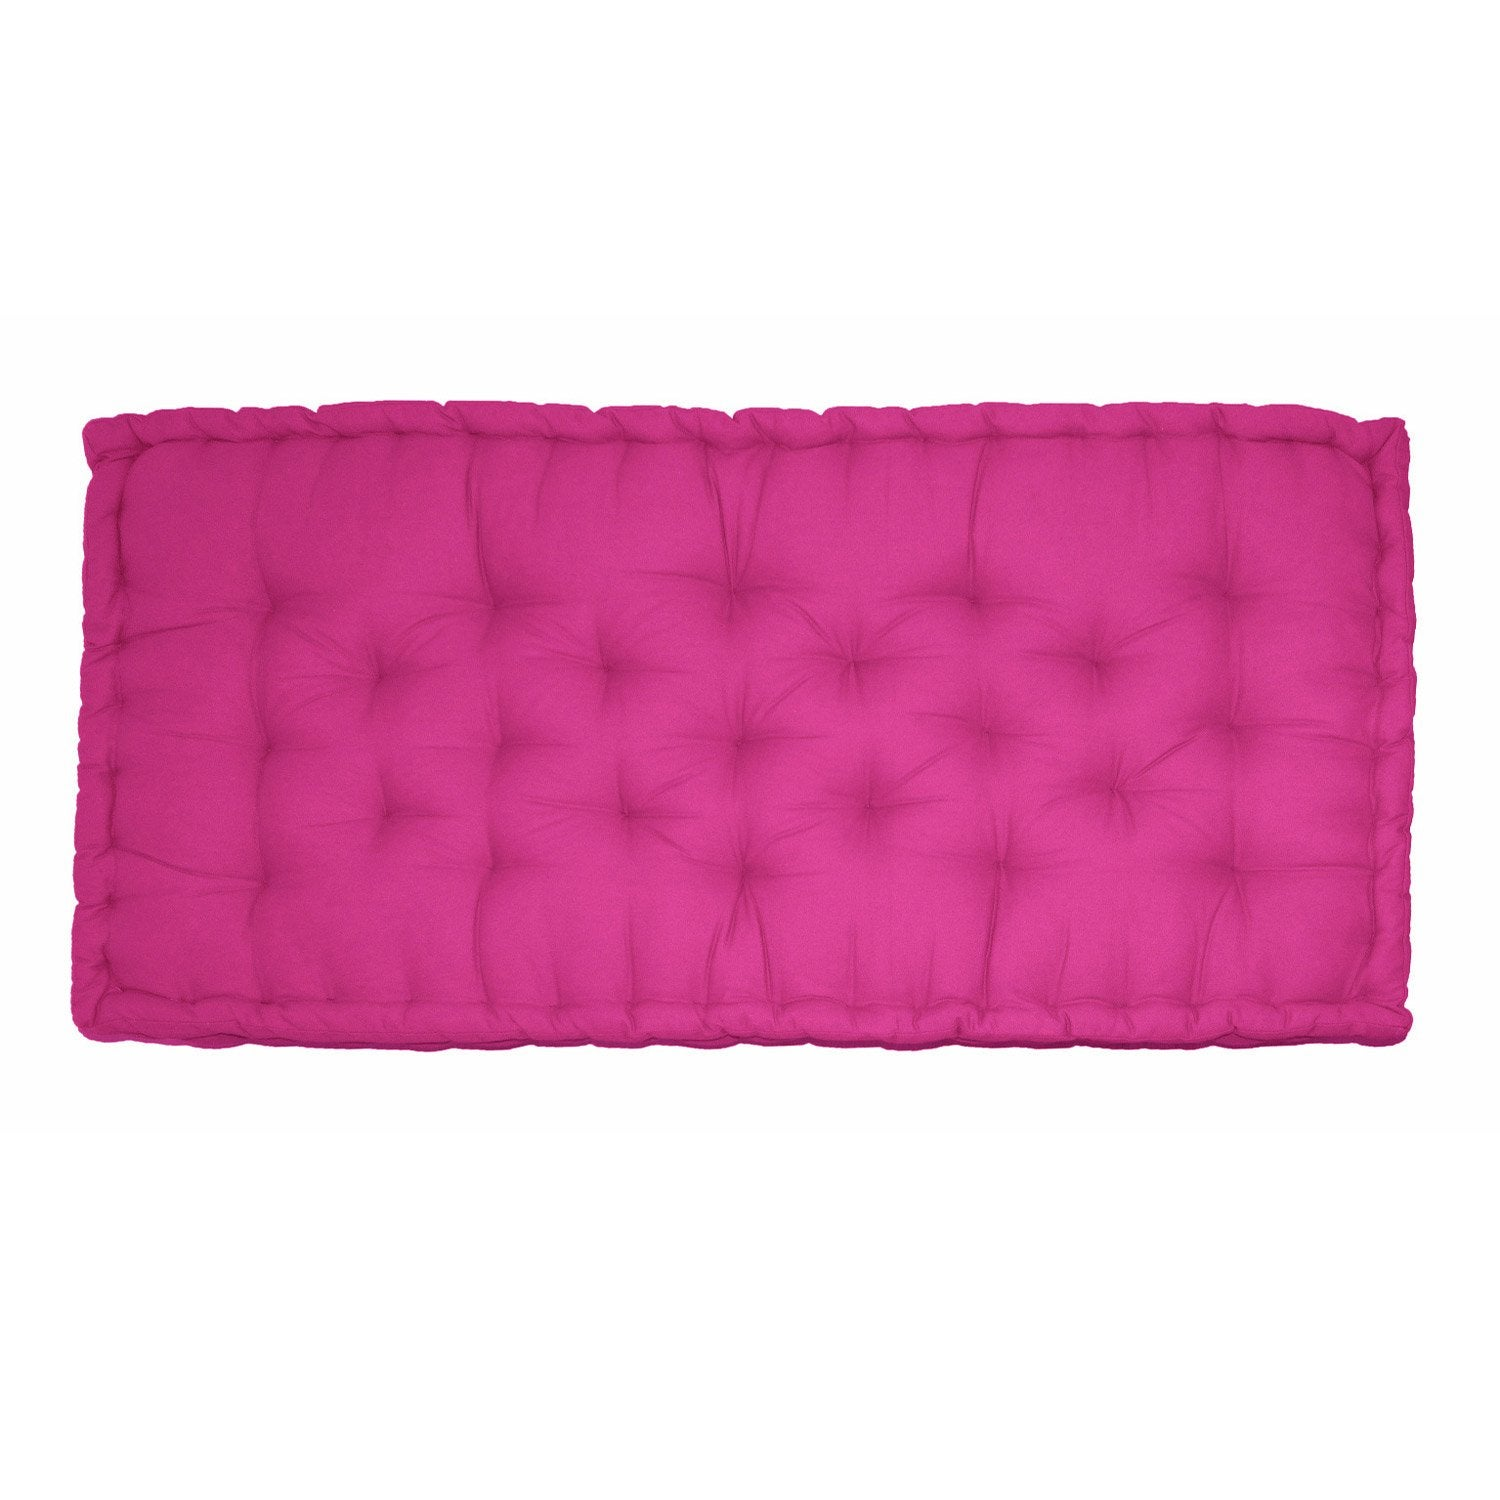 coussin matelas de sol fuchsia x cm leroy merlin. Black Bedroom Furniture Sets. Home Design Ideas